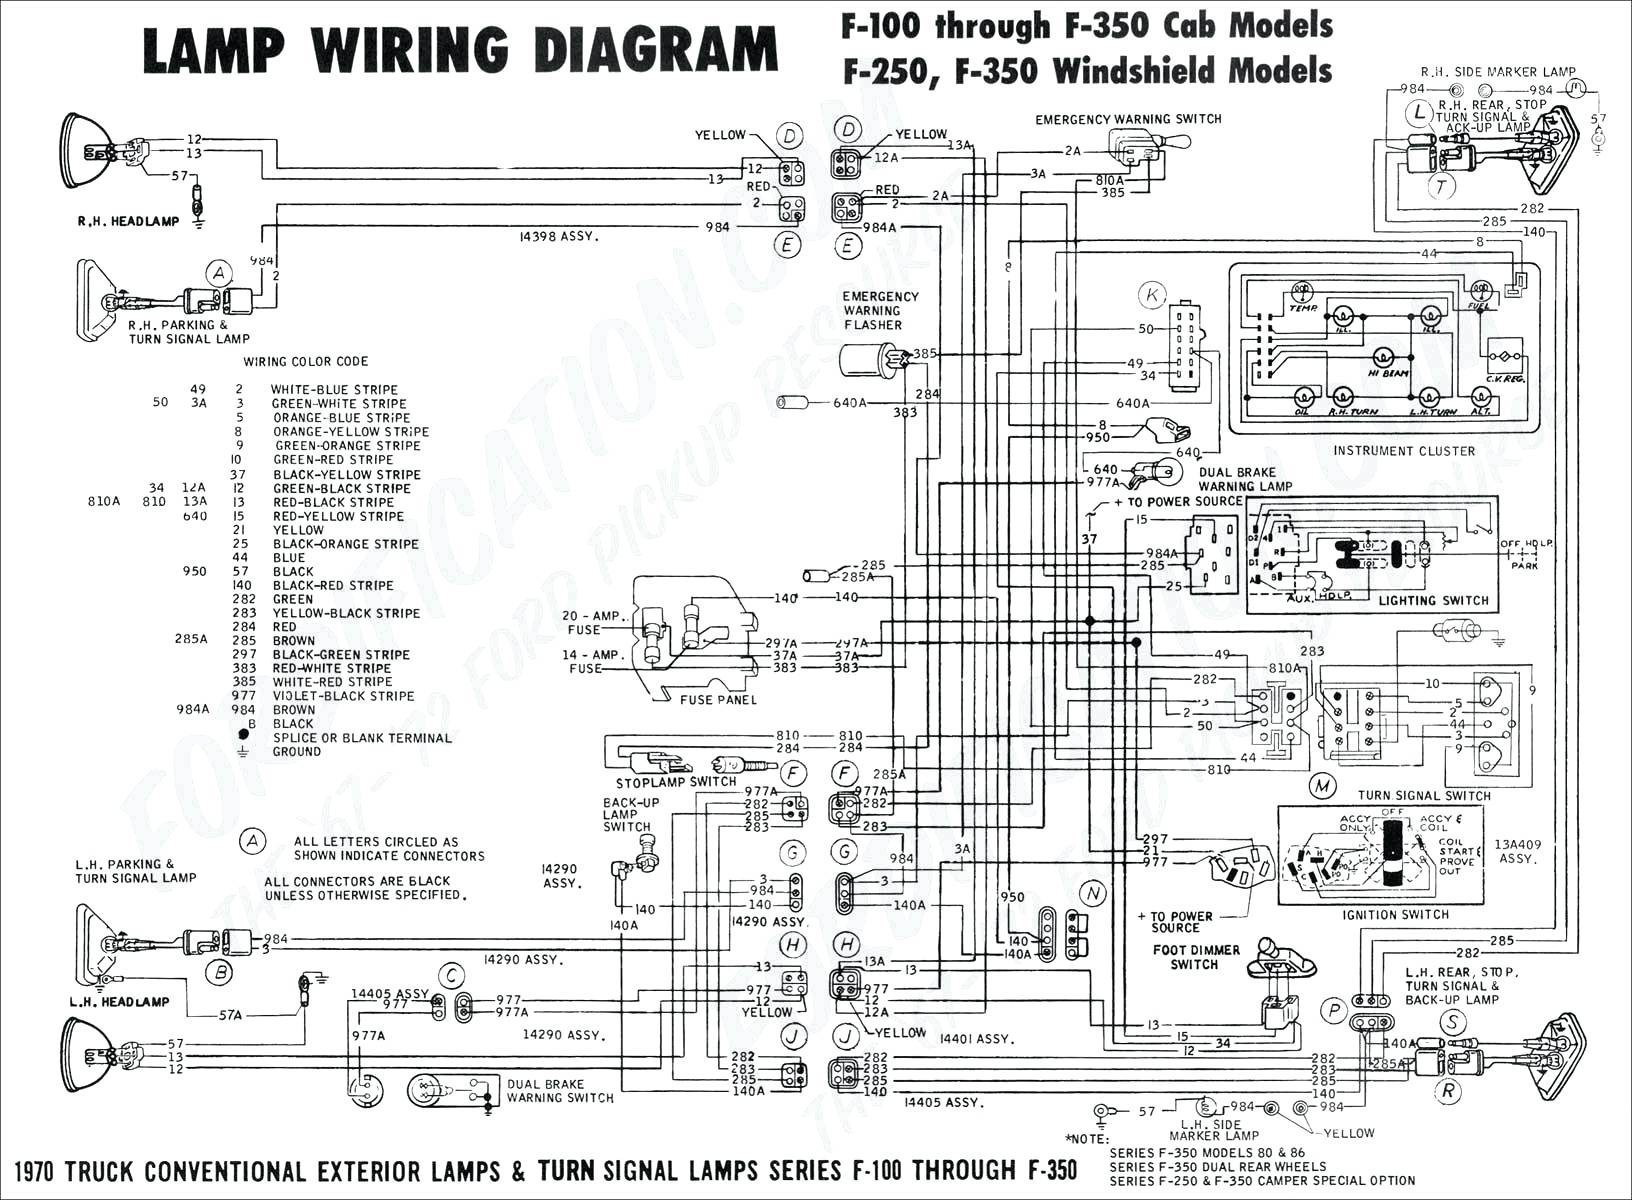 2001 Chevy Silverado Wiring Diagram Bmw X5 Ac Wiring Diagram ... on